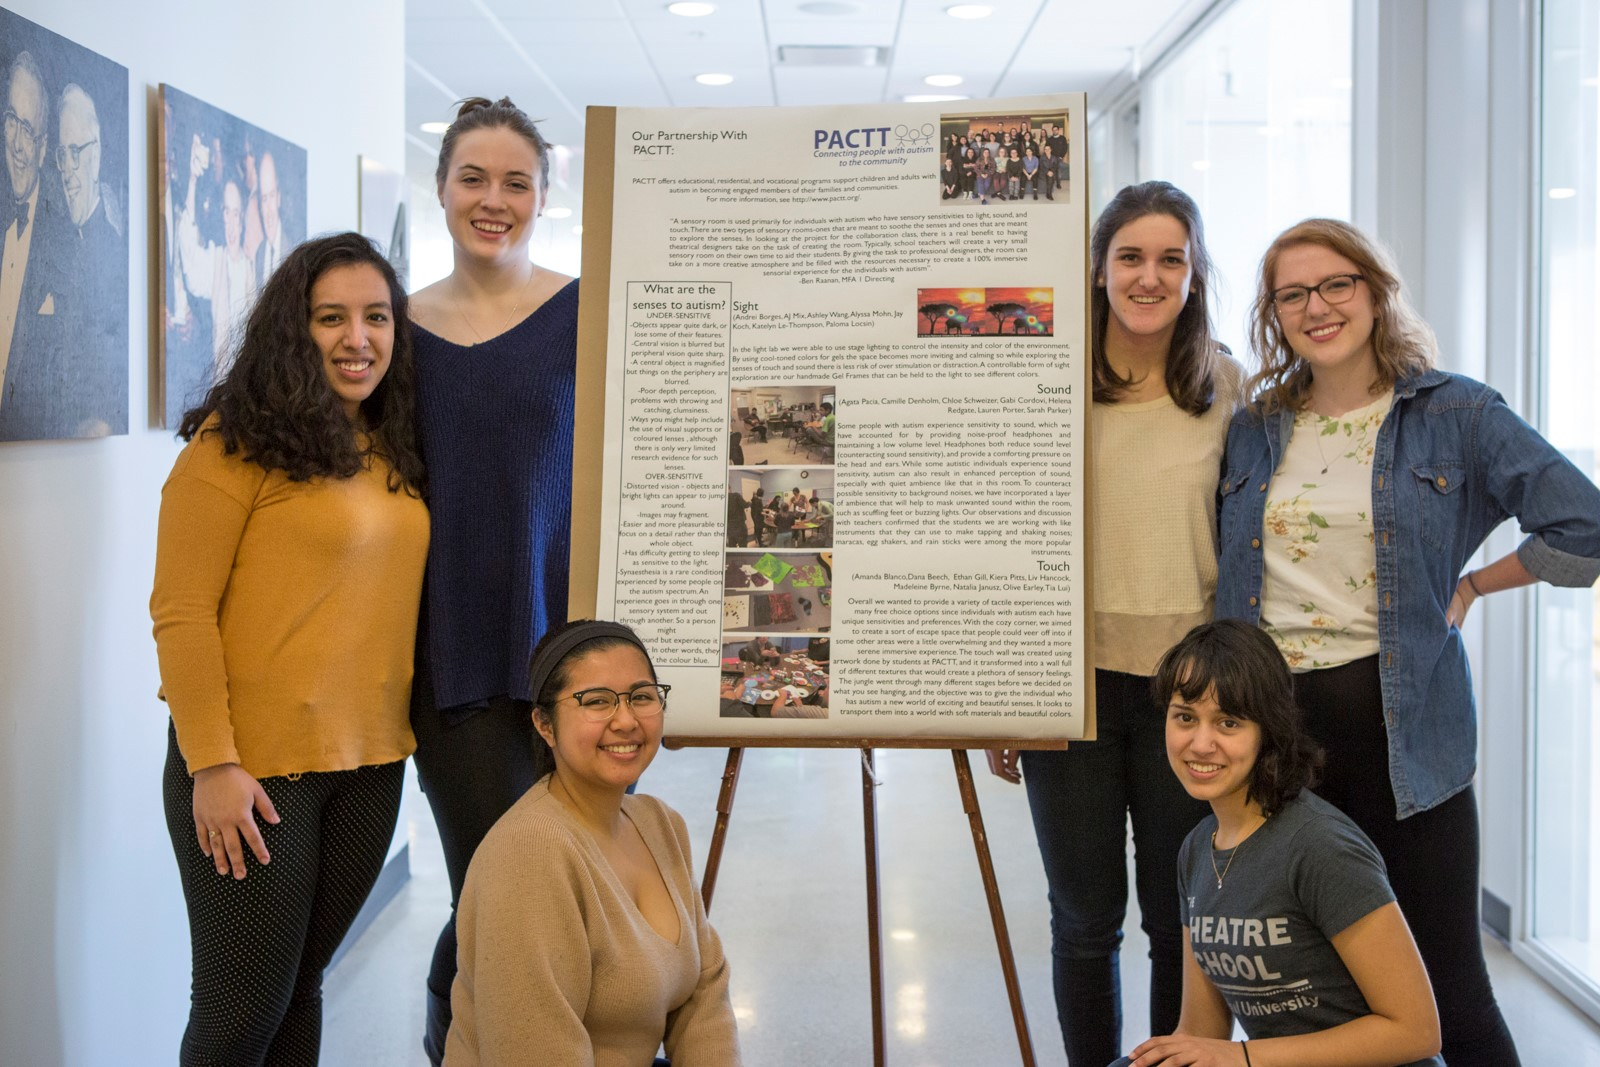 A group of students displaying their poster on community-based service learning